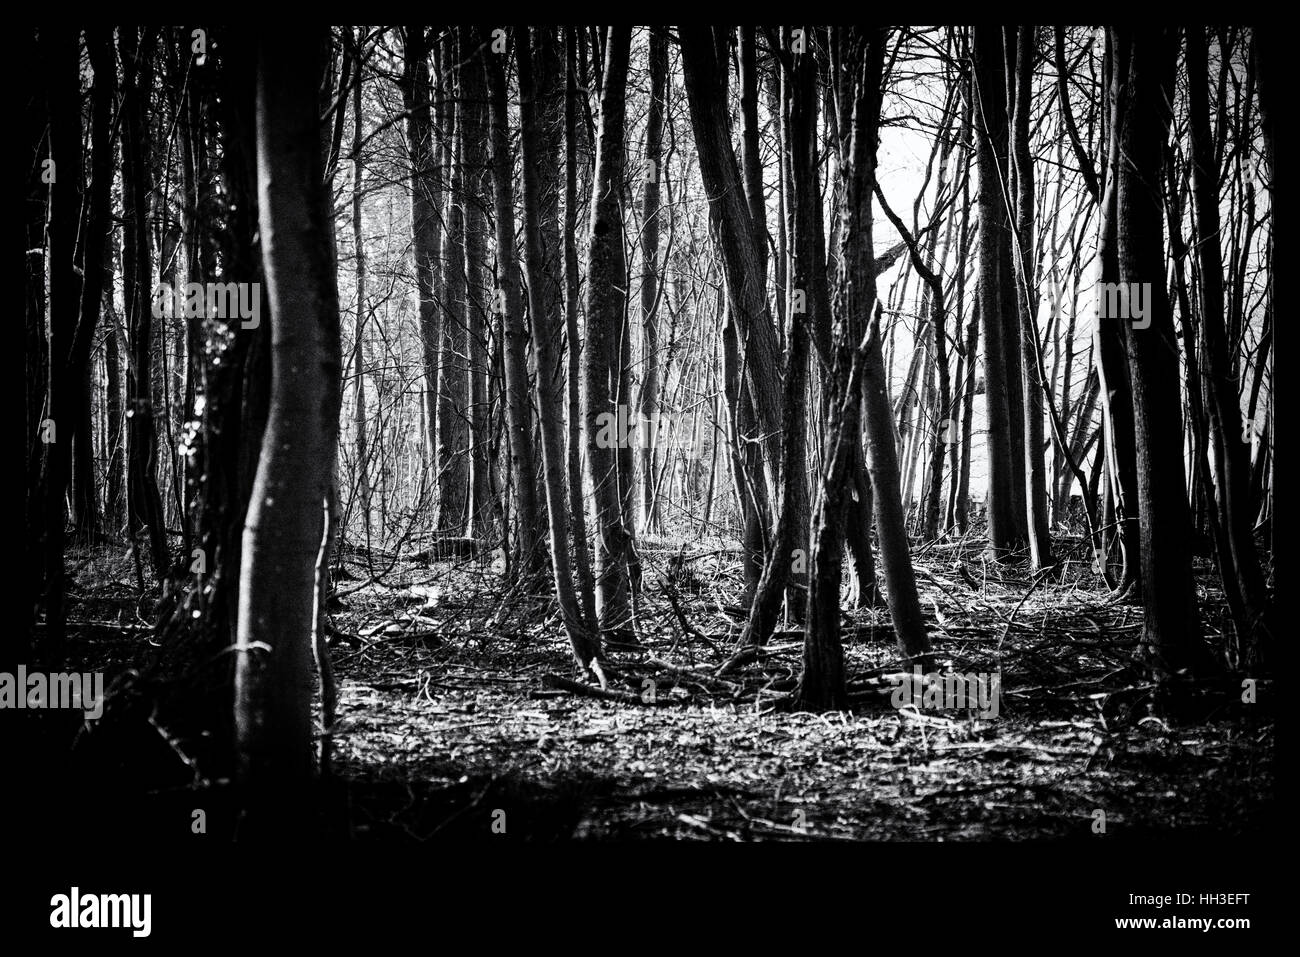 Dark Spooky Grainy Woodland, Black and White - Stock Image